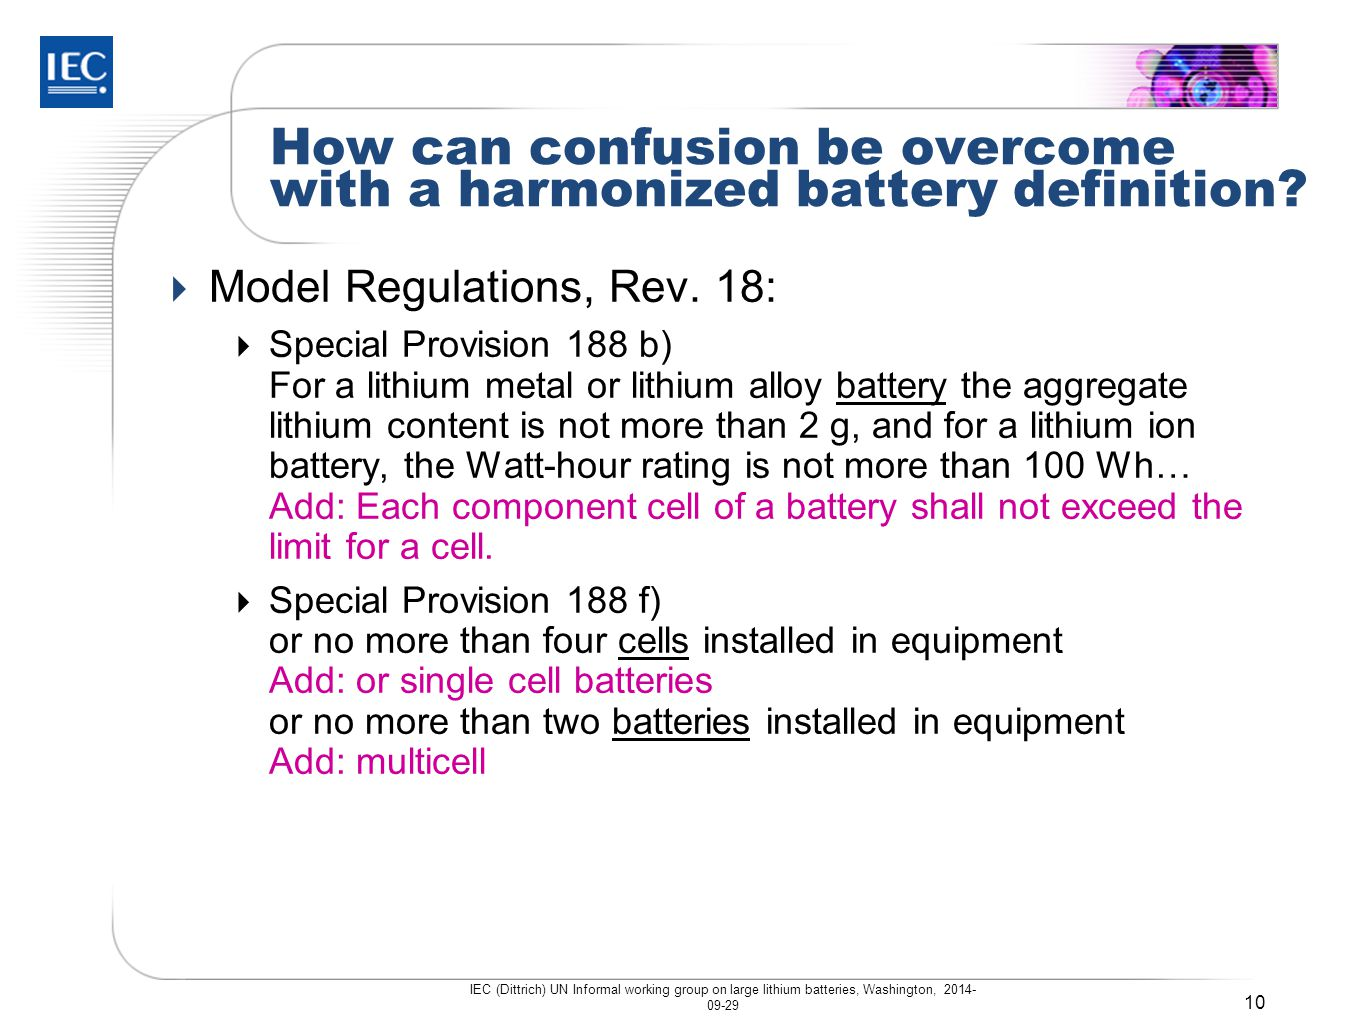 How can confusion be overcome with a harmonized battery definition